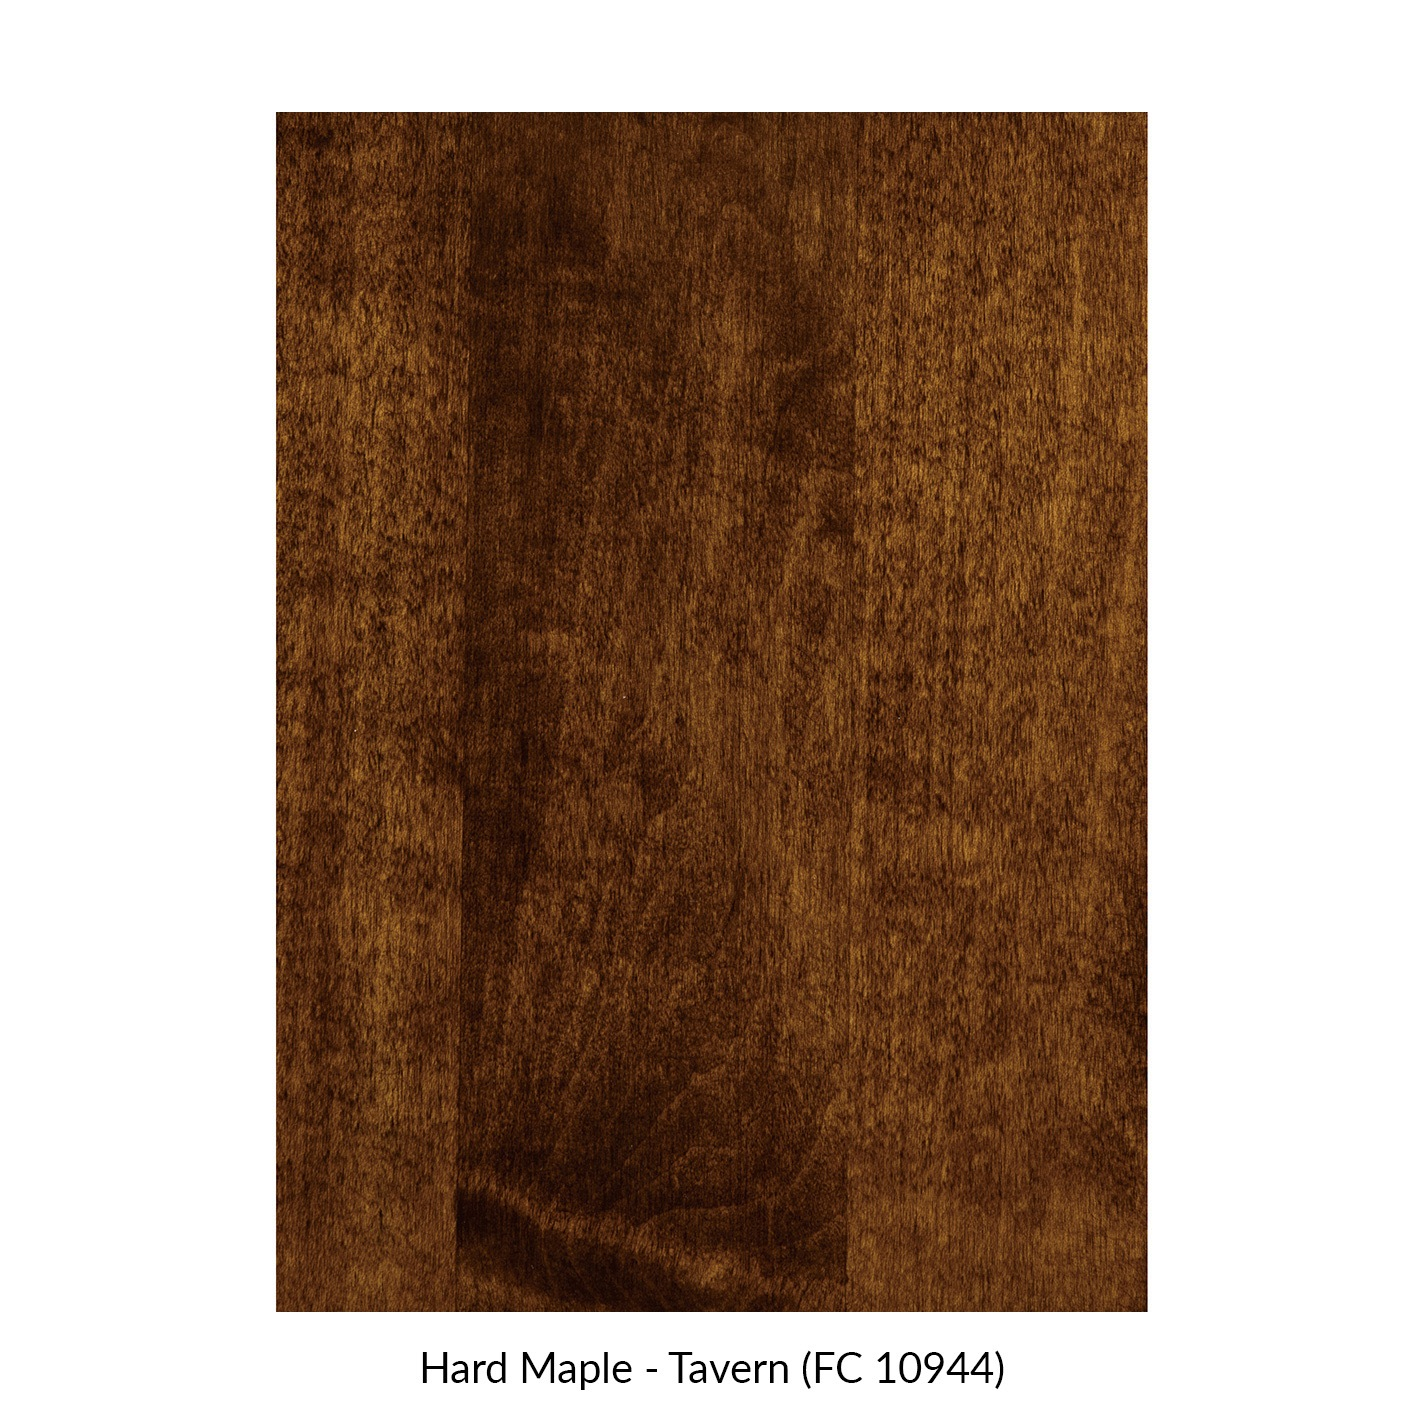 spectrum-hard-maple-tavern-fc-10944.jpg